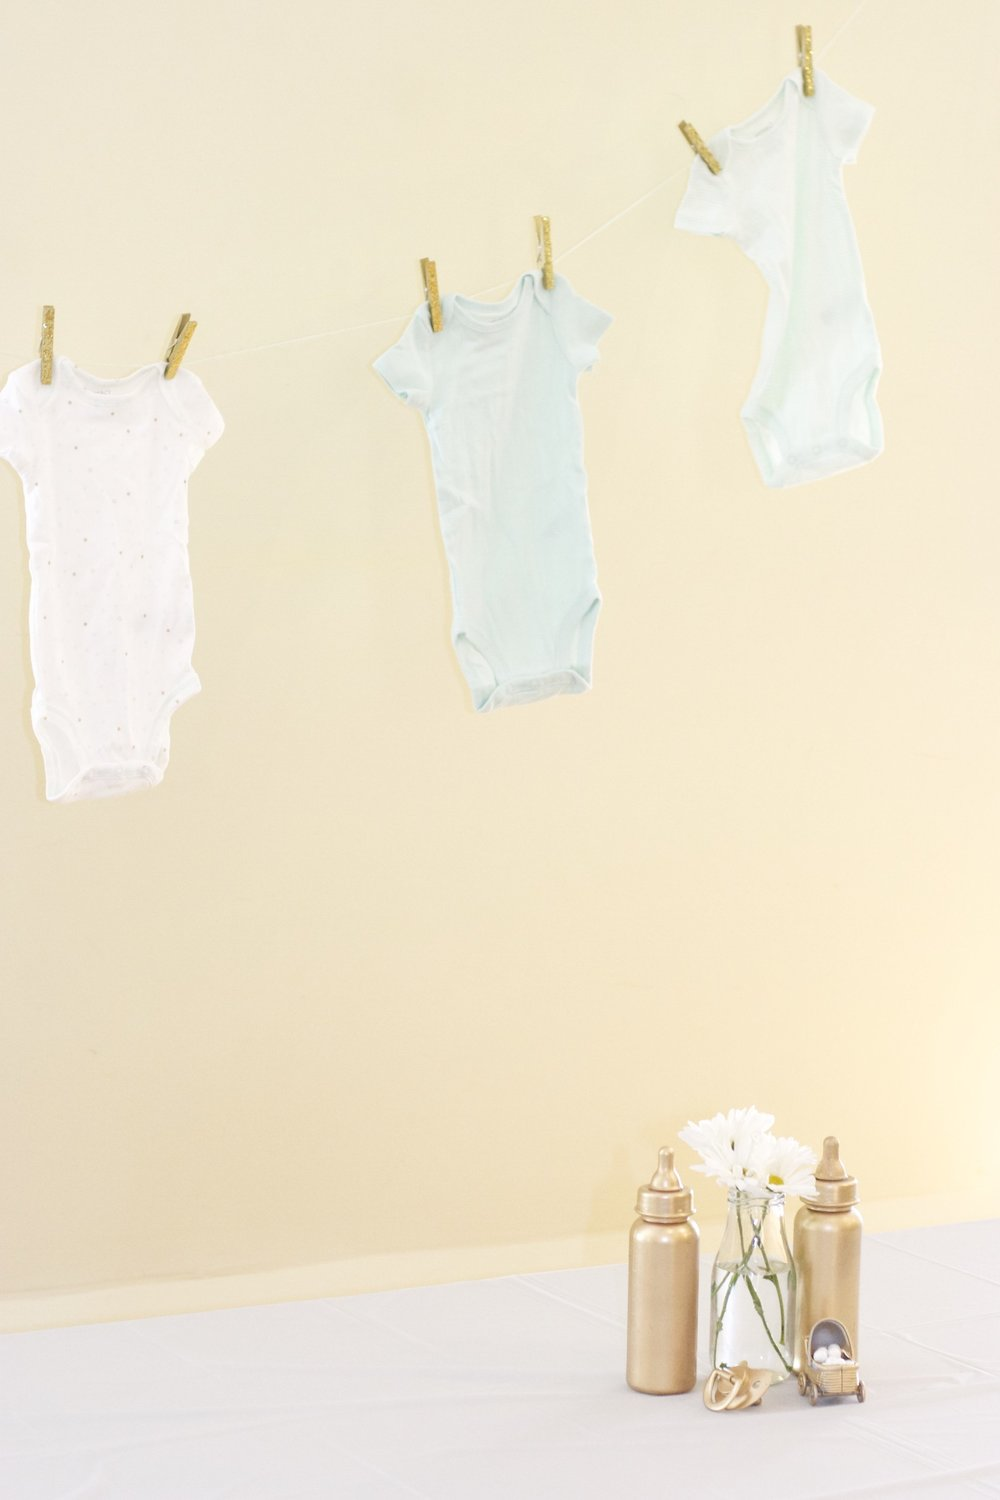 I took mint and white onesies from Target and some gold glitter clothespins to decorate the bare walls.